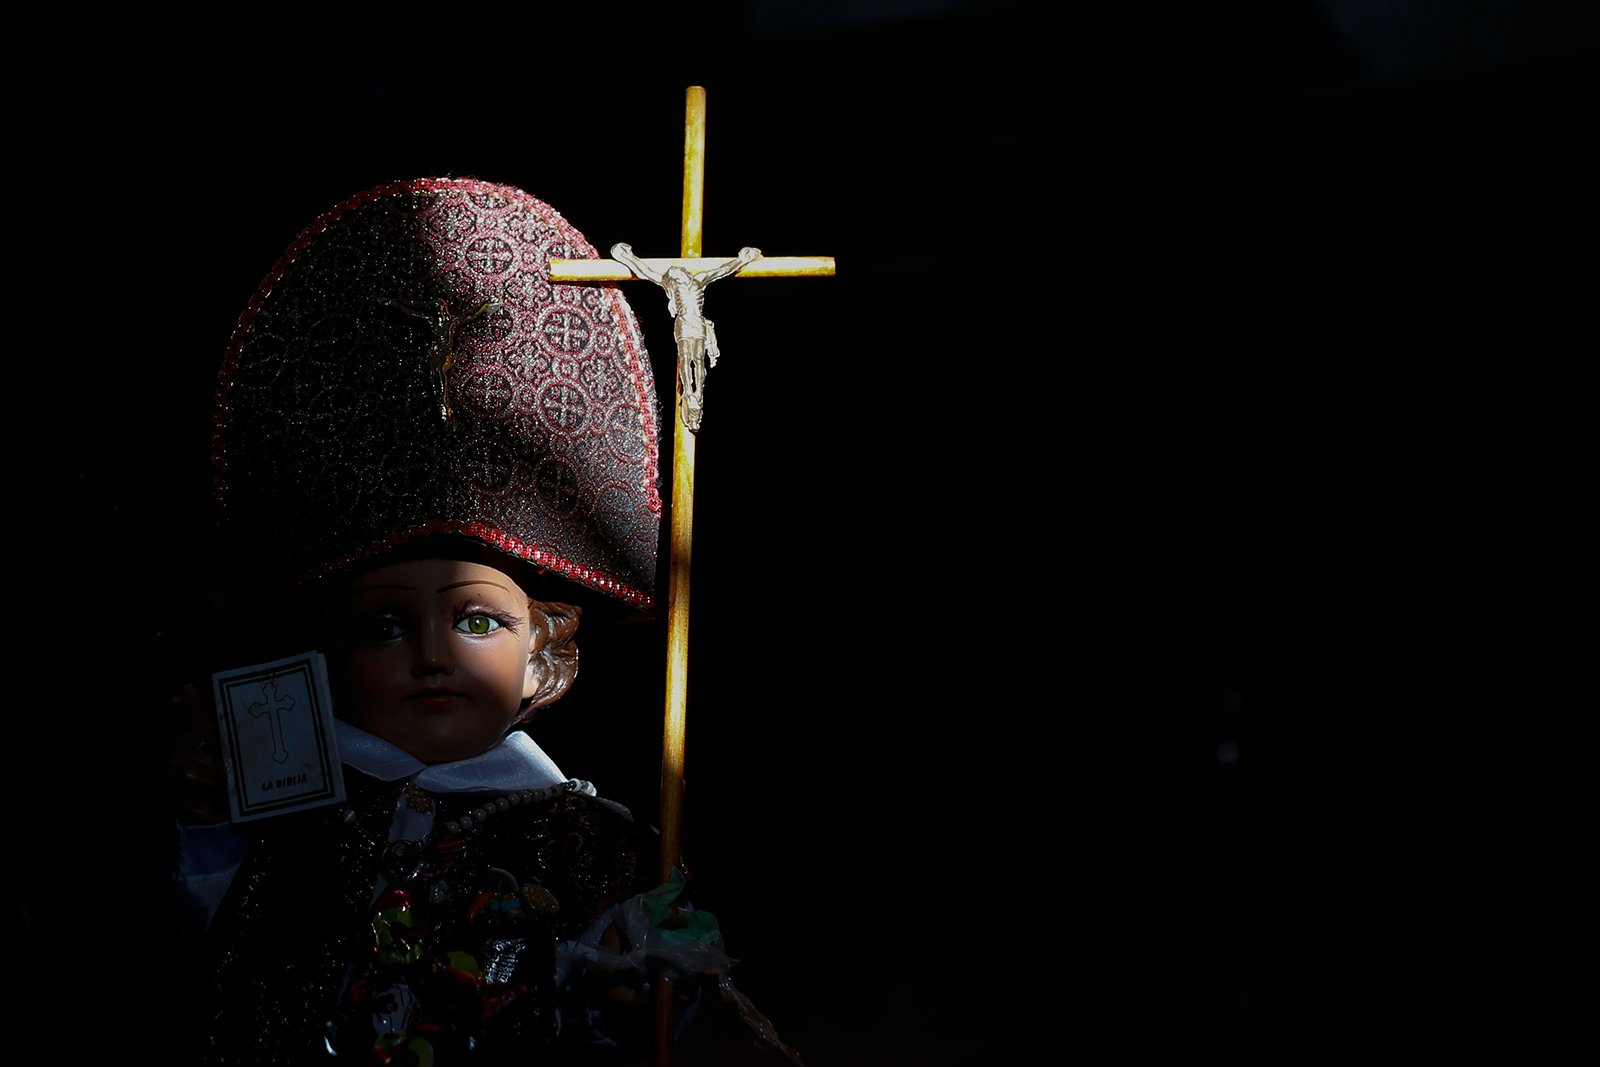 """A sunbeam shines on the face of a baby Jesus figure, held by a man waiting to have the figurine blessed, at the Purification of Our Lady of Candlemas Chapel in Mexico City, Tuesday, Feb. 2, 2021. A surge in COVID-19 cases limited celebrations of the """"Dia de la Candelaria,"""" or Candlemas Day, with Catholic Masses cancelled and families unable to gather to share the traditional holiday tamales. (AP Photo/Rebecca Blackwell)"""